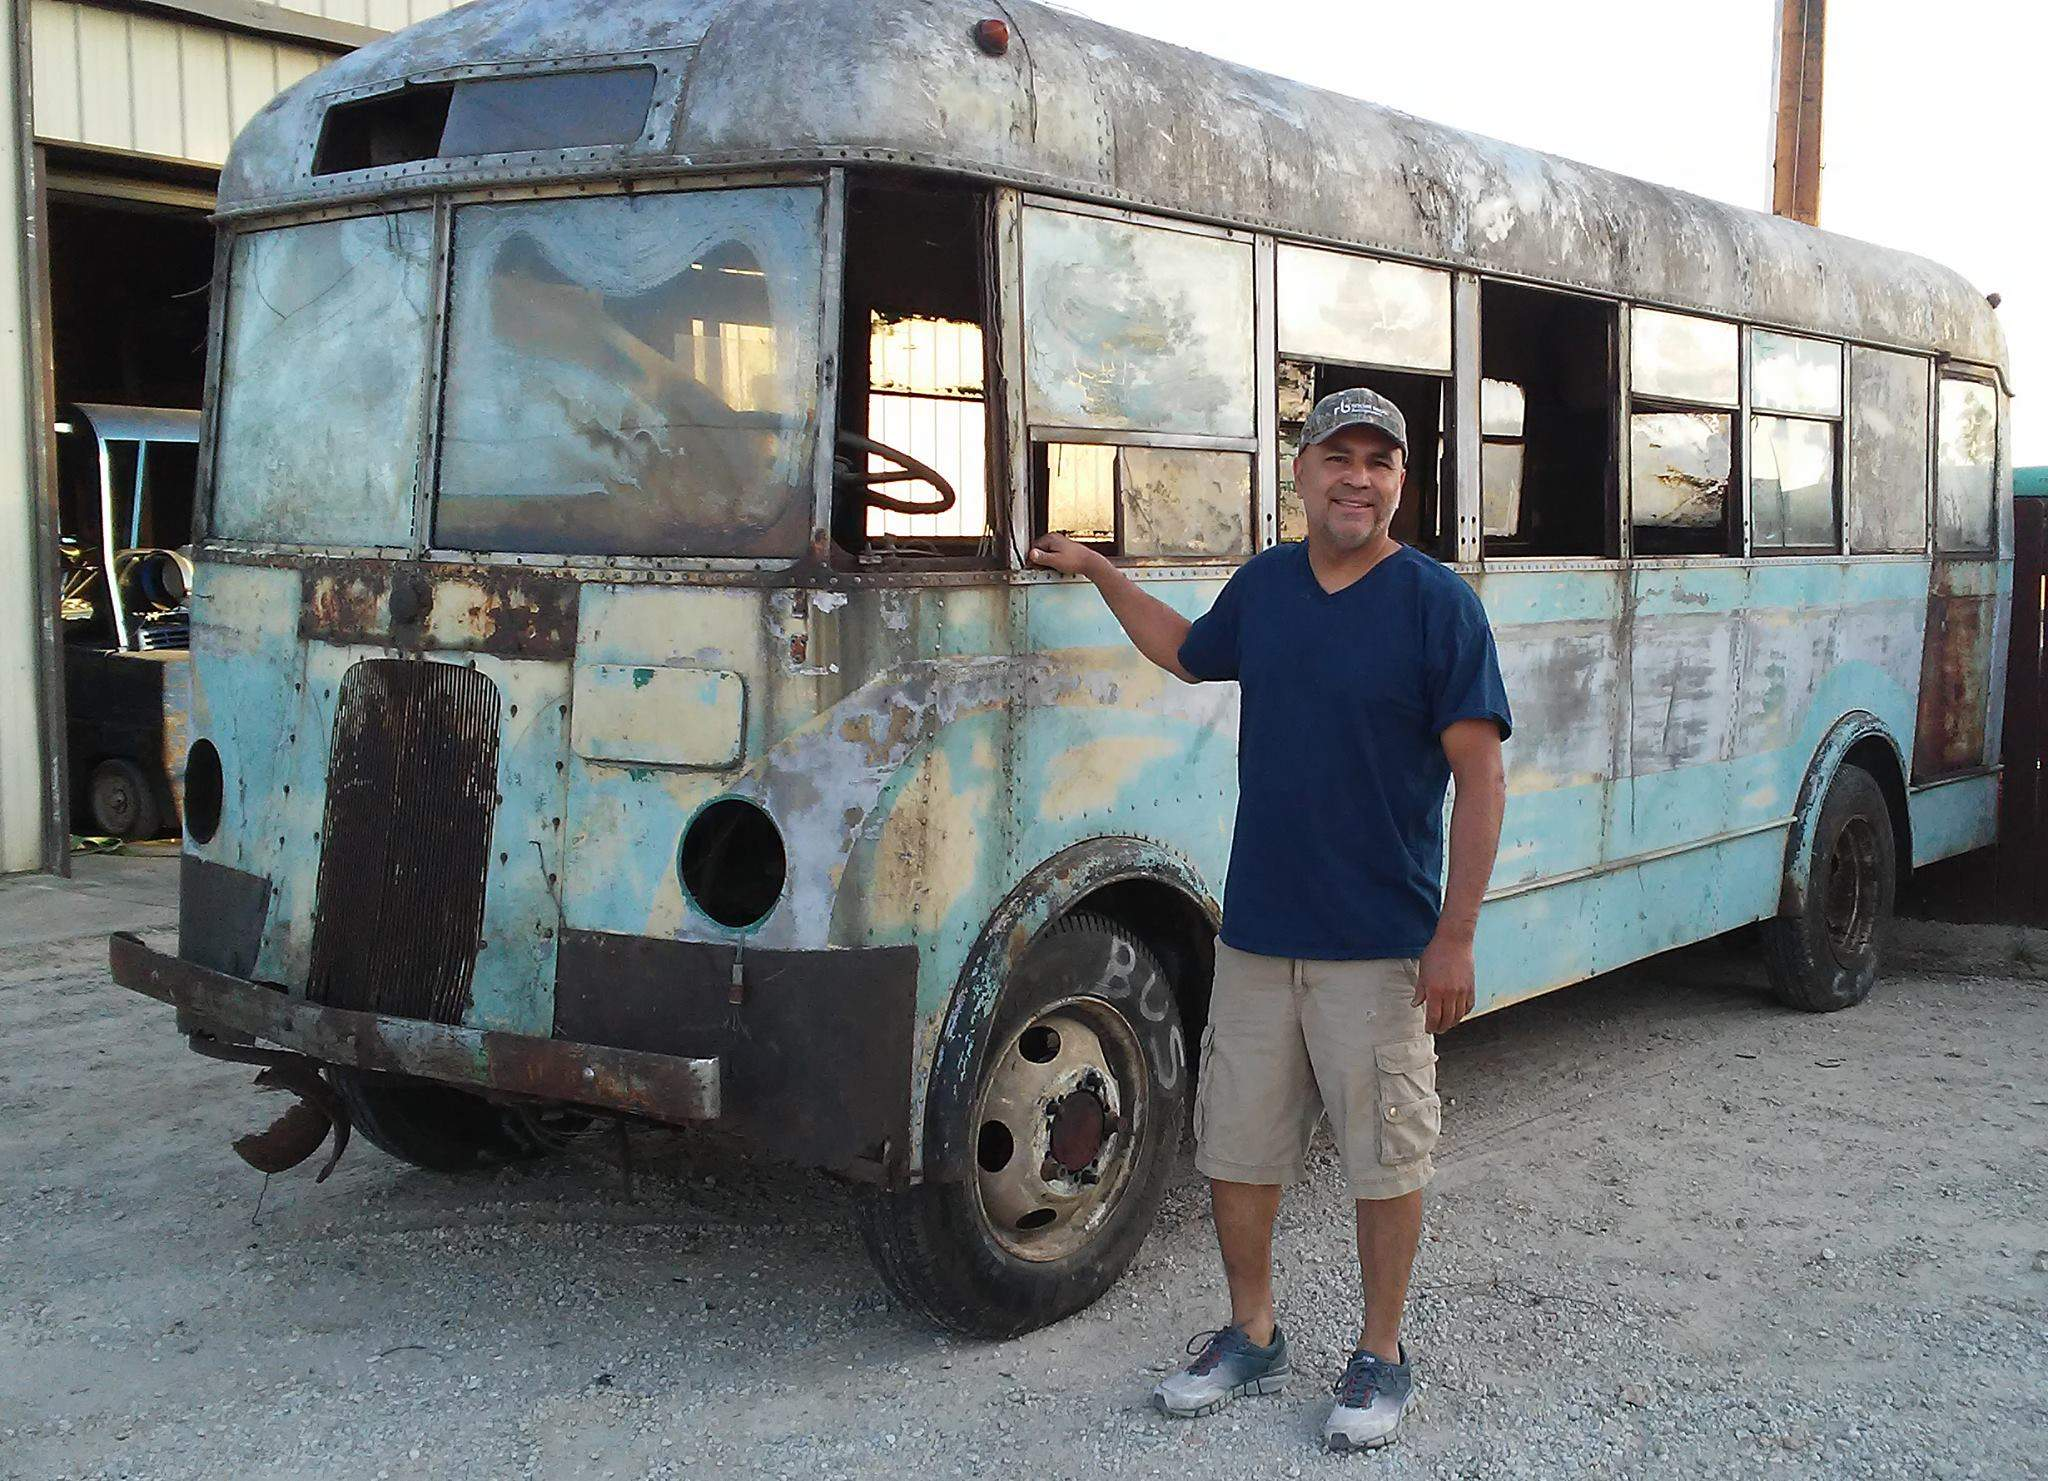 "High Ridge (Mo.) resident James Gebert is pictured with his 1936 Yellow Coach bus that he is restoring. Gebert noted that portions of the name ""Chester Coach Lines Inc."" became visible after power washing the bus's exterior."